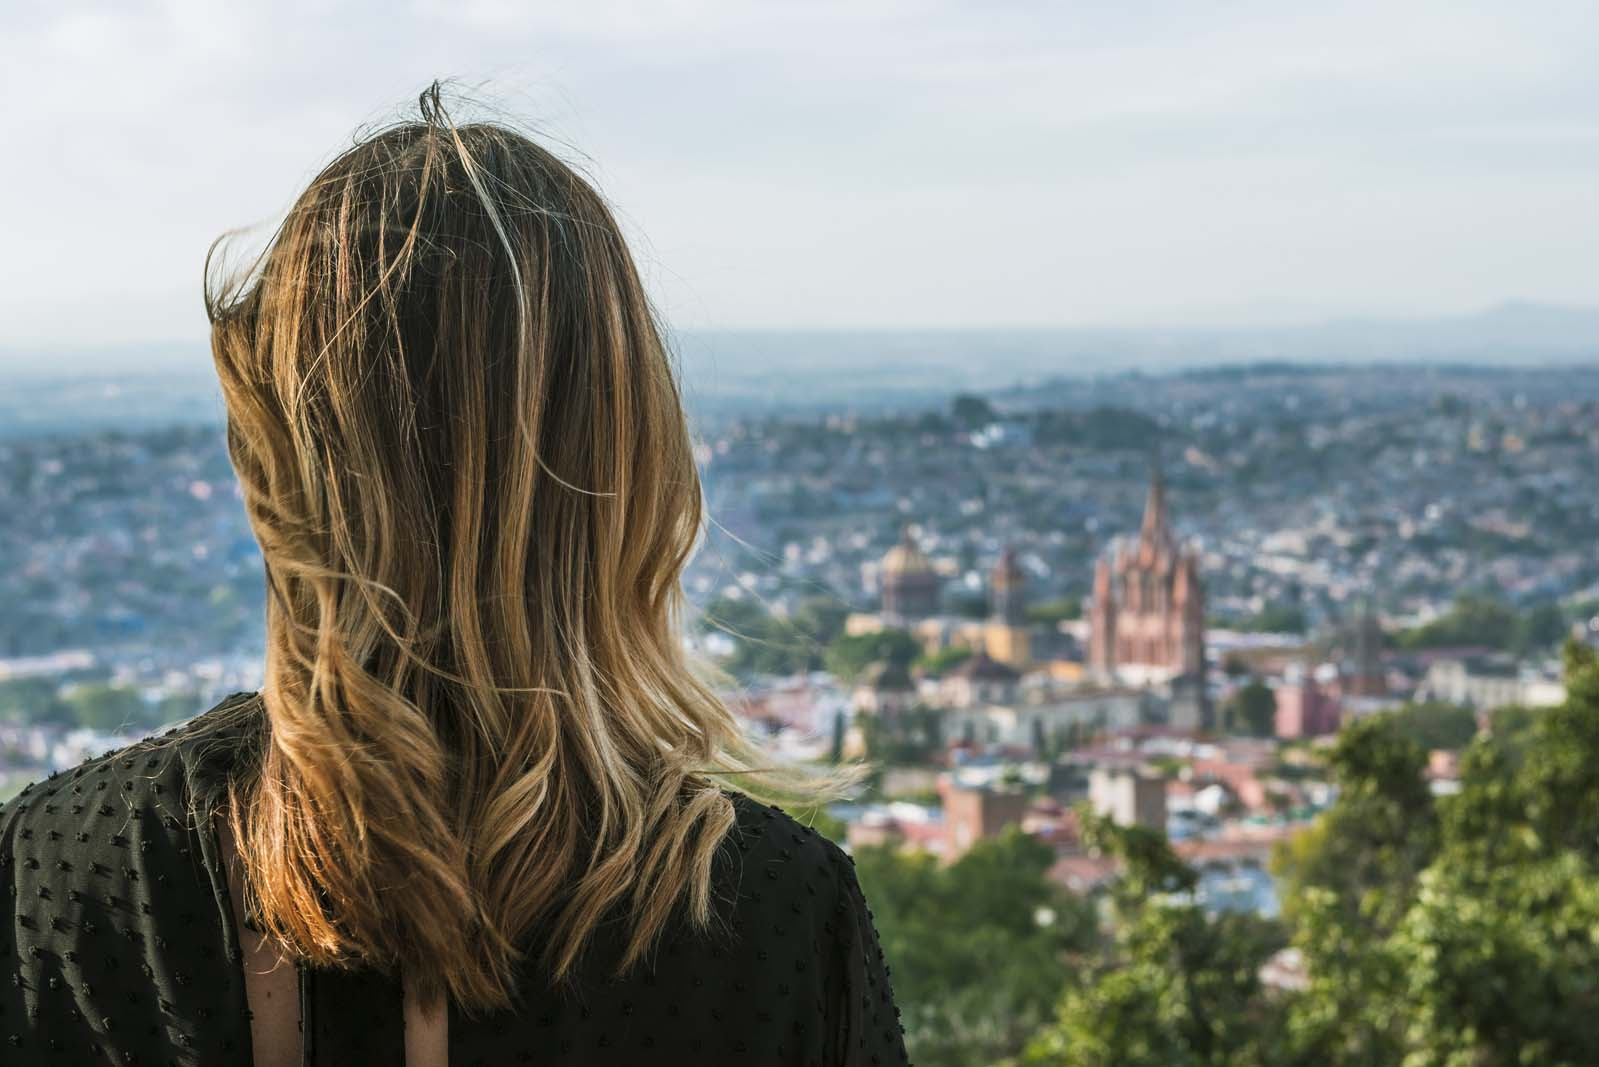 San Miguel De Allende from Viewpoint